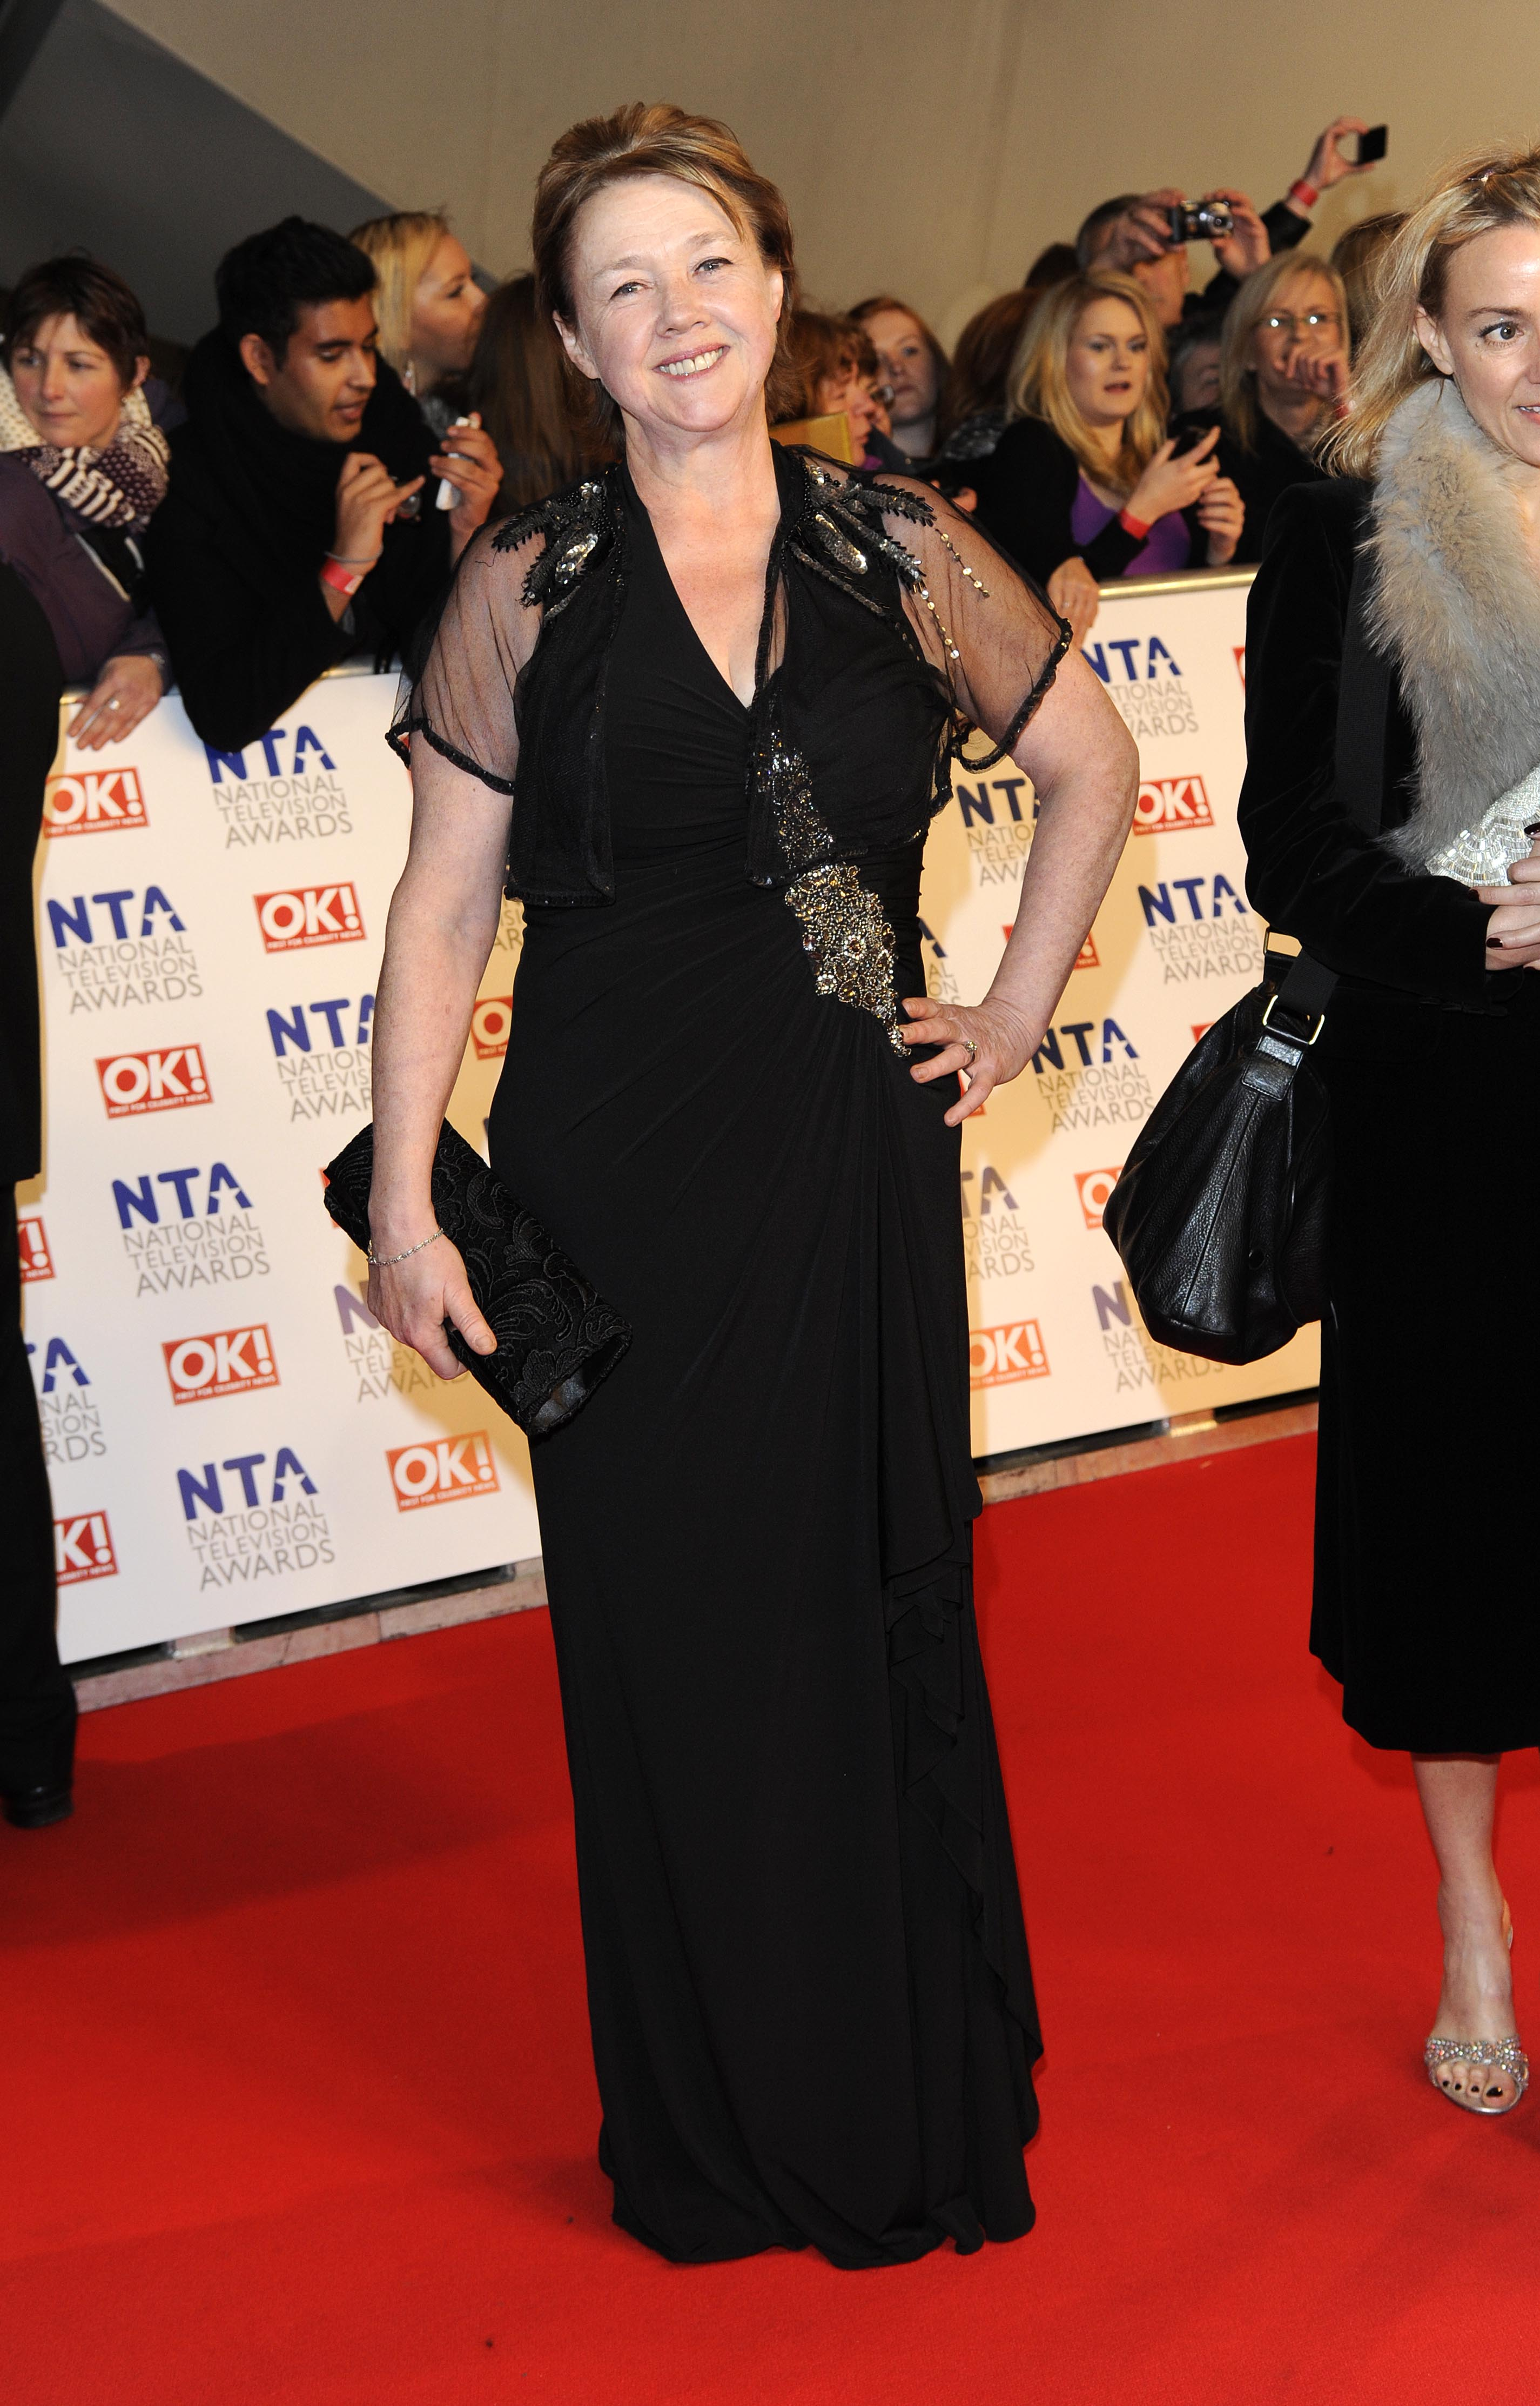 Pauline Quirke at the National Television Awards 2012 in London